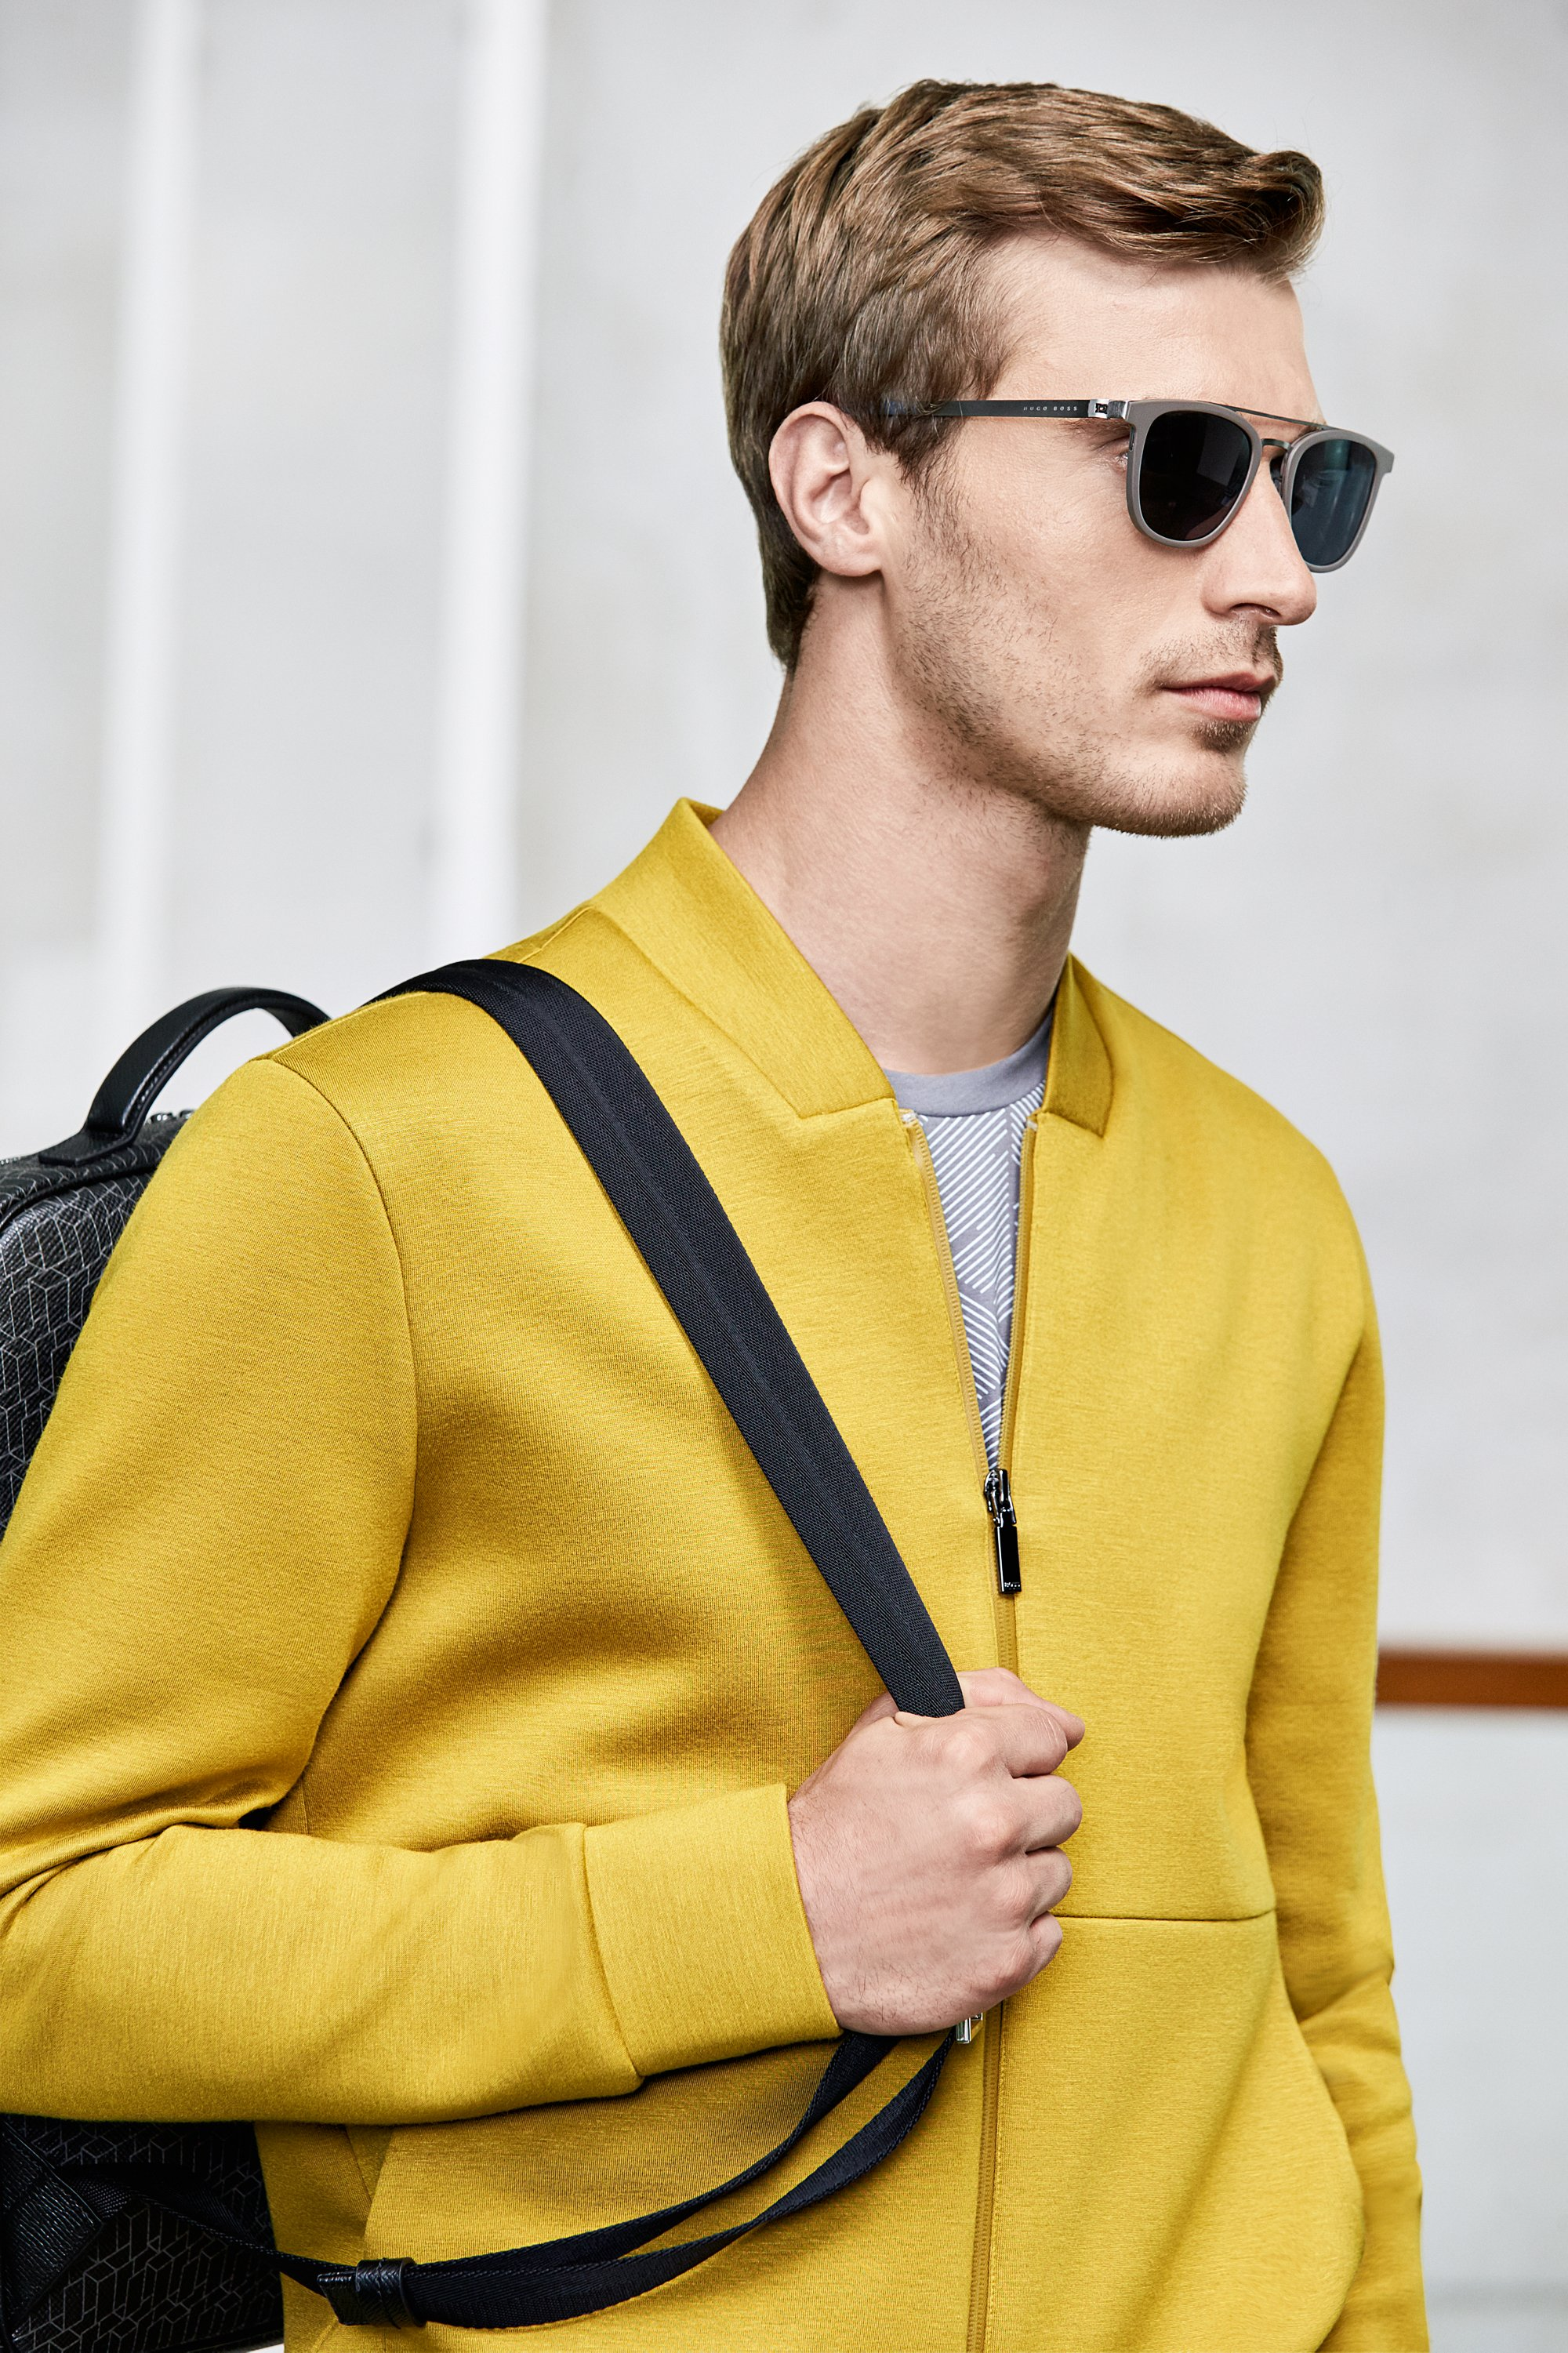 Jacket, sunglasses and bag by BOSS